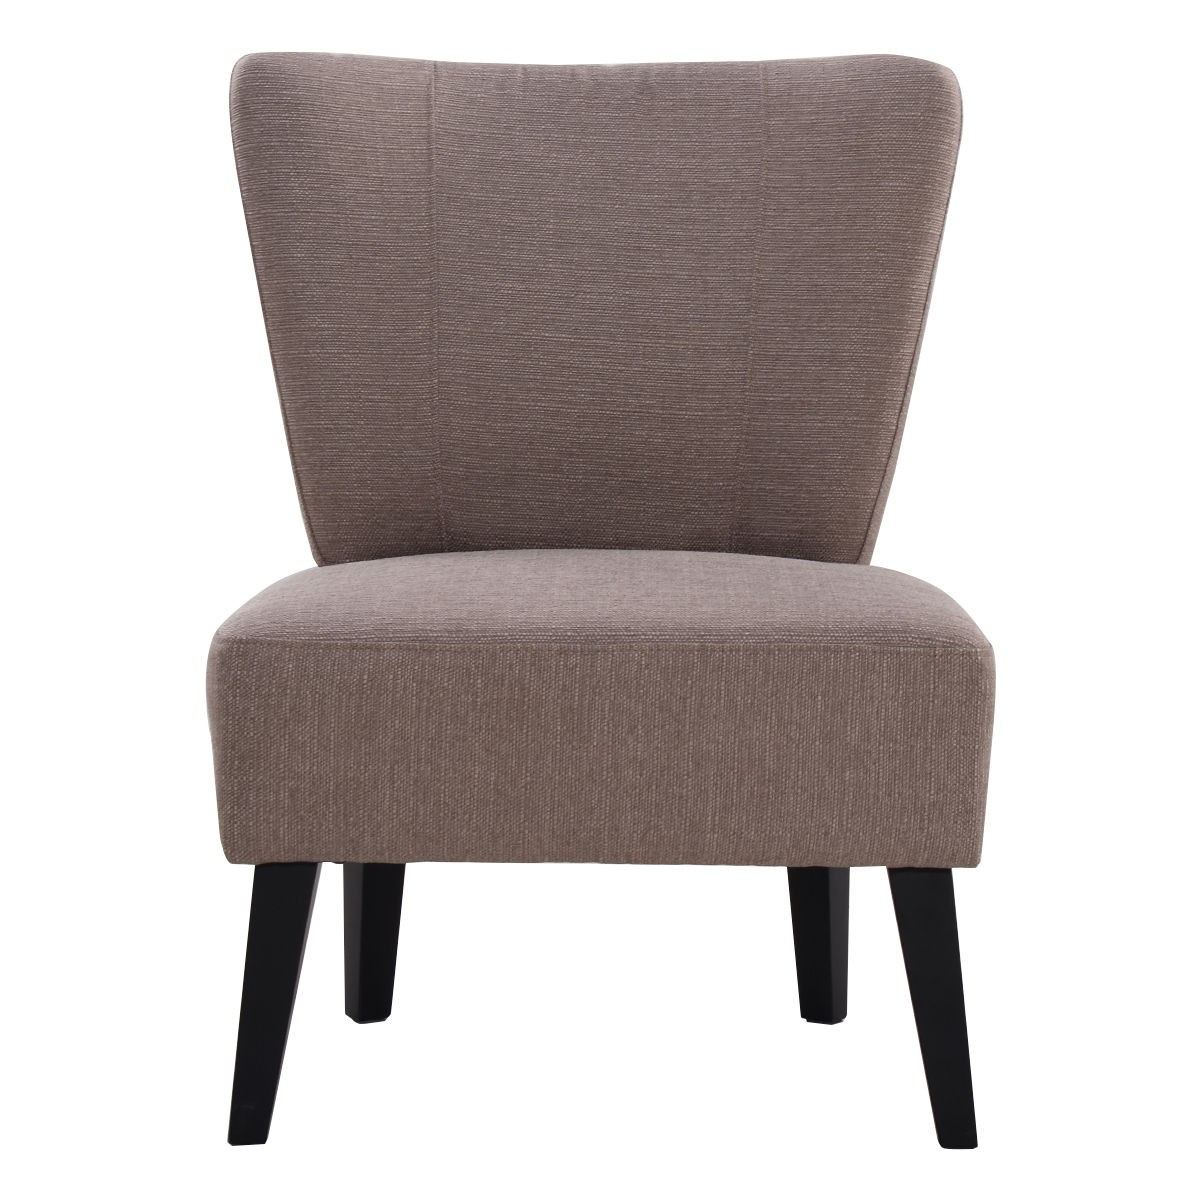 armless accent chair upholstered seat dining chair living room furniture ebay. Black Bedroom Furniture Sets. Home Design Ideas